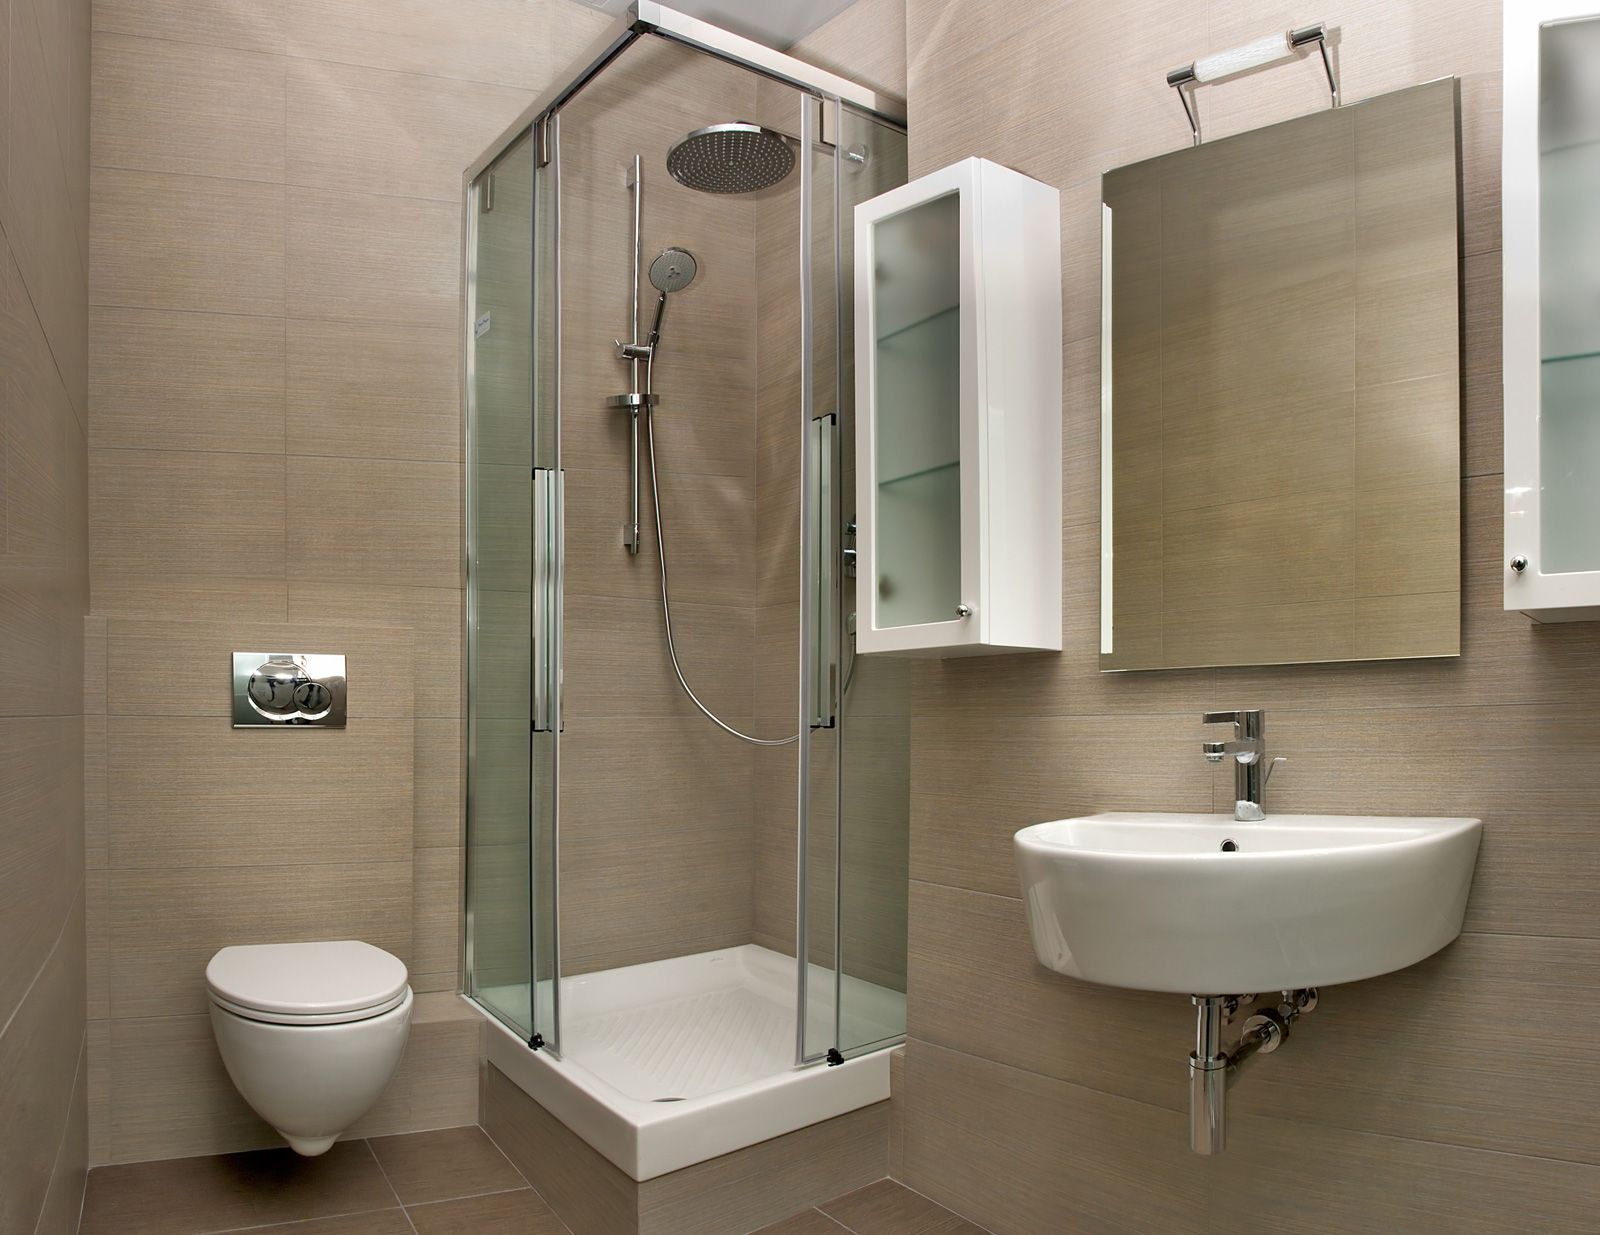 Shower Ideas For Small Bathroom To Inspire You On How To Decorate ...